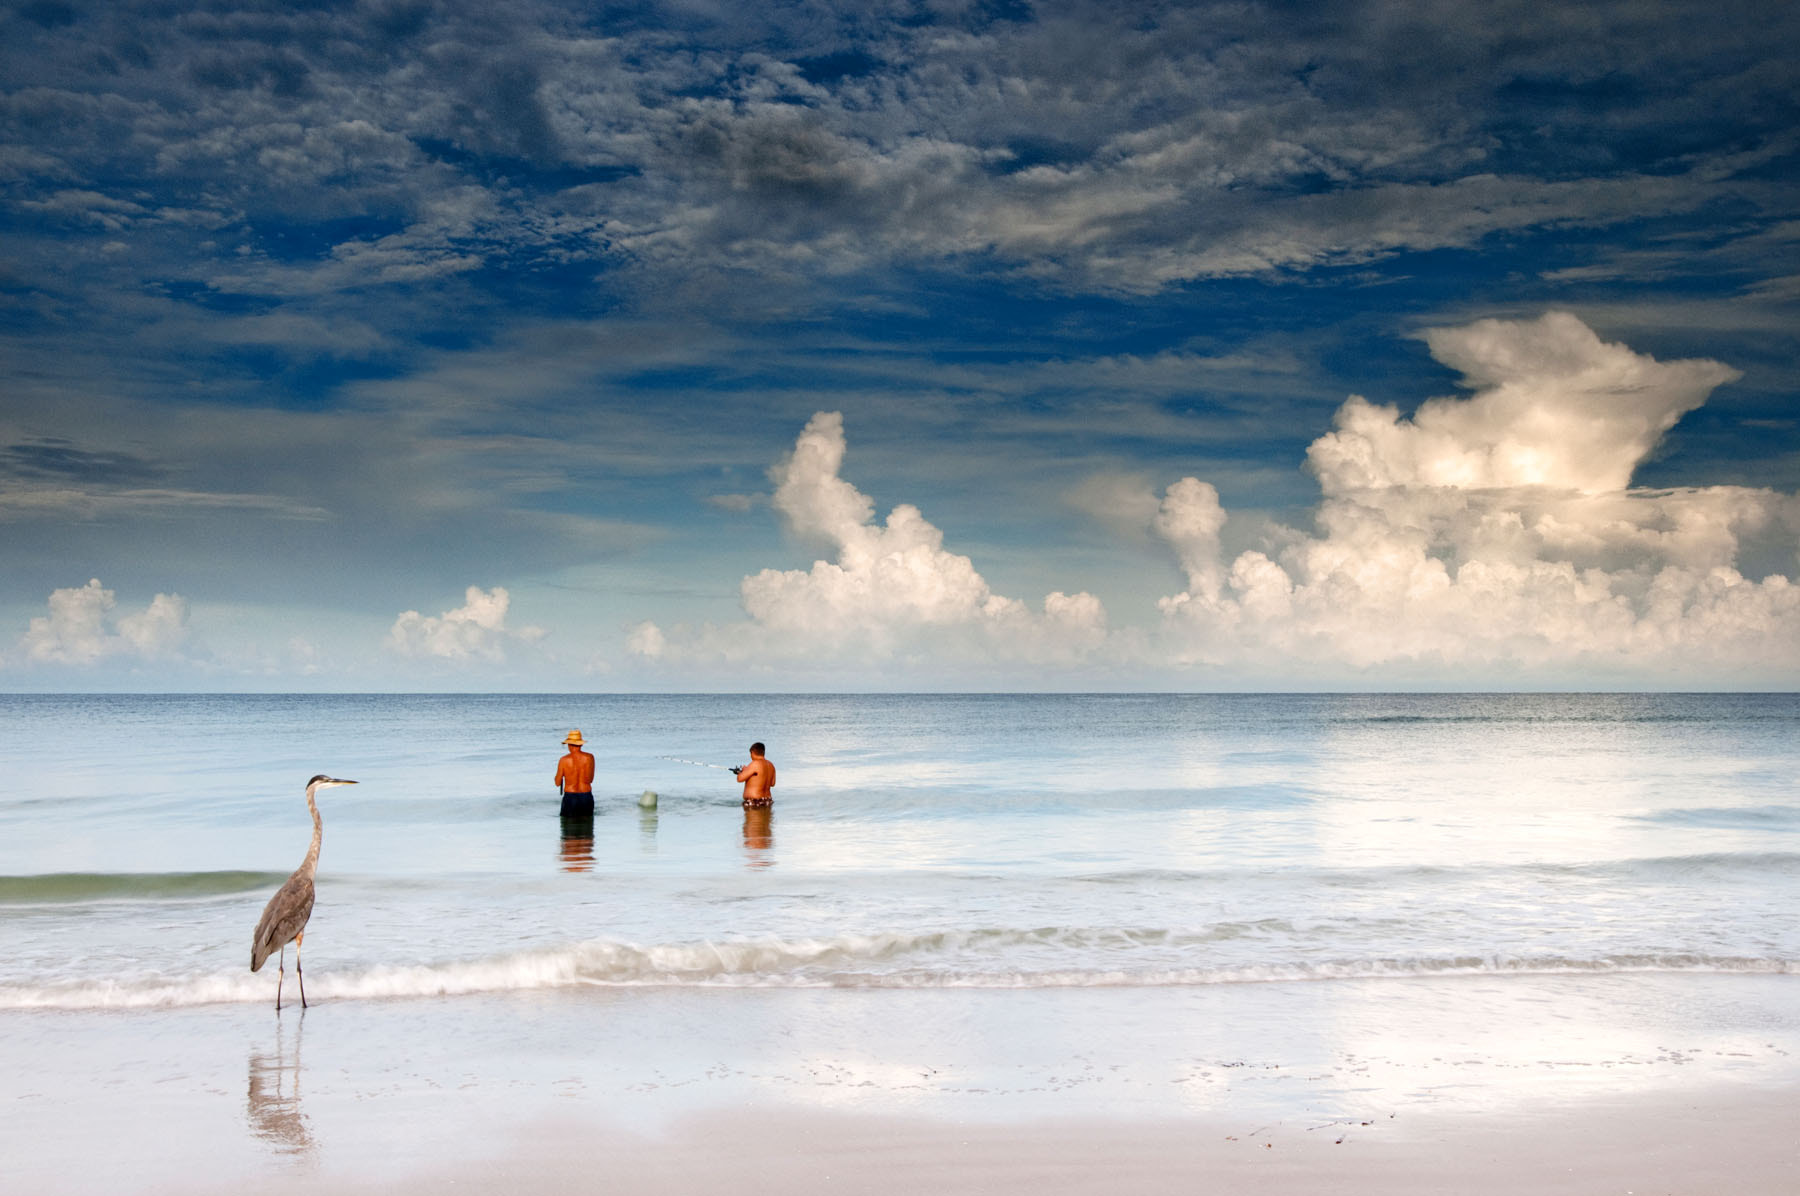 Photograph Series - Florida 6 by Pietro Canali on 500px